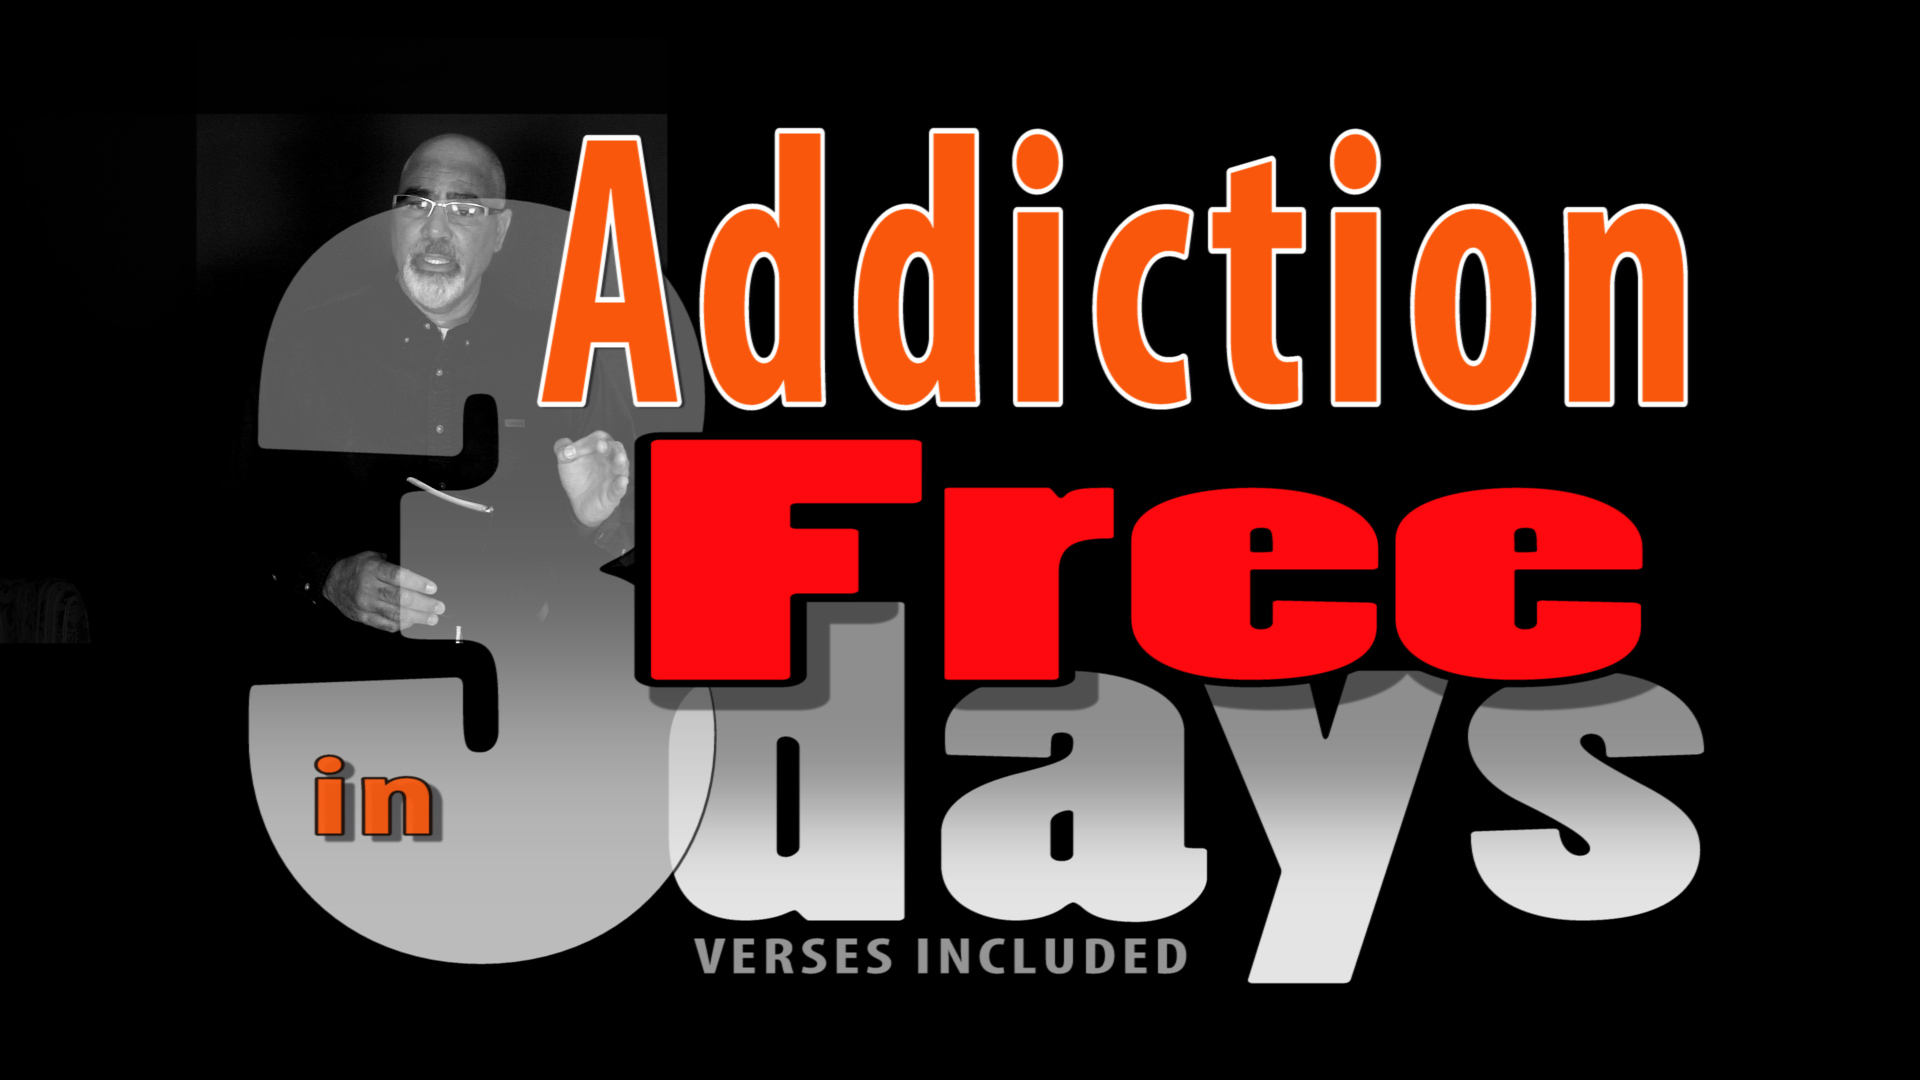 addiction free in 3 days scriptures included pt1